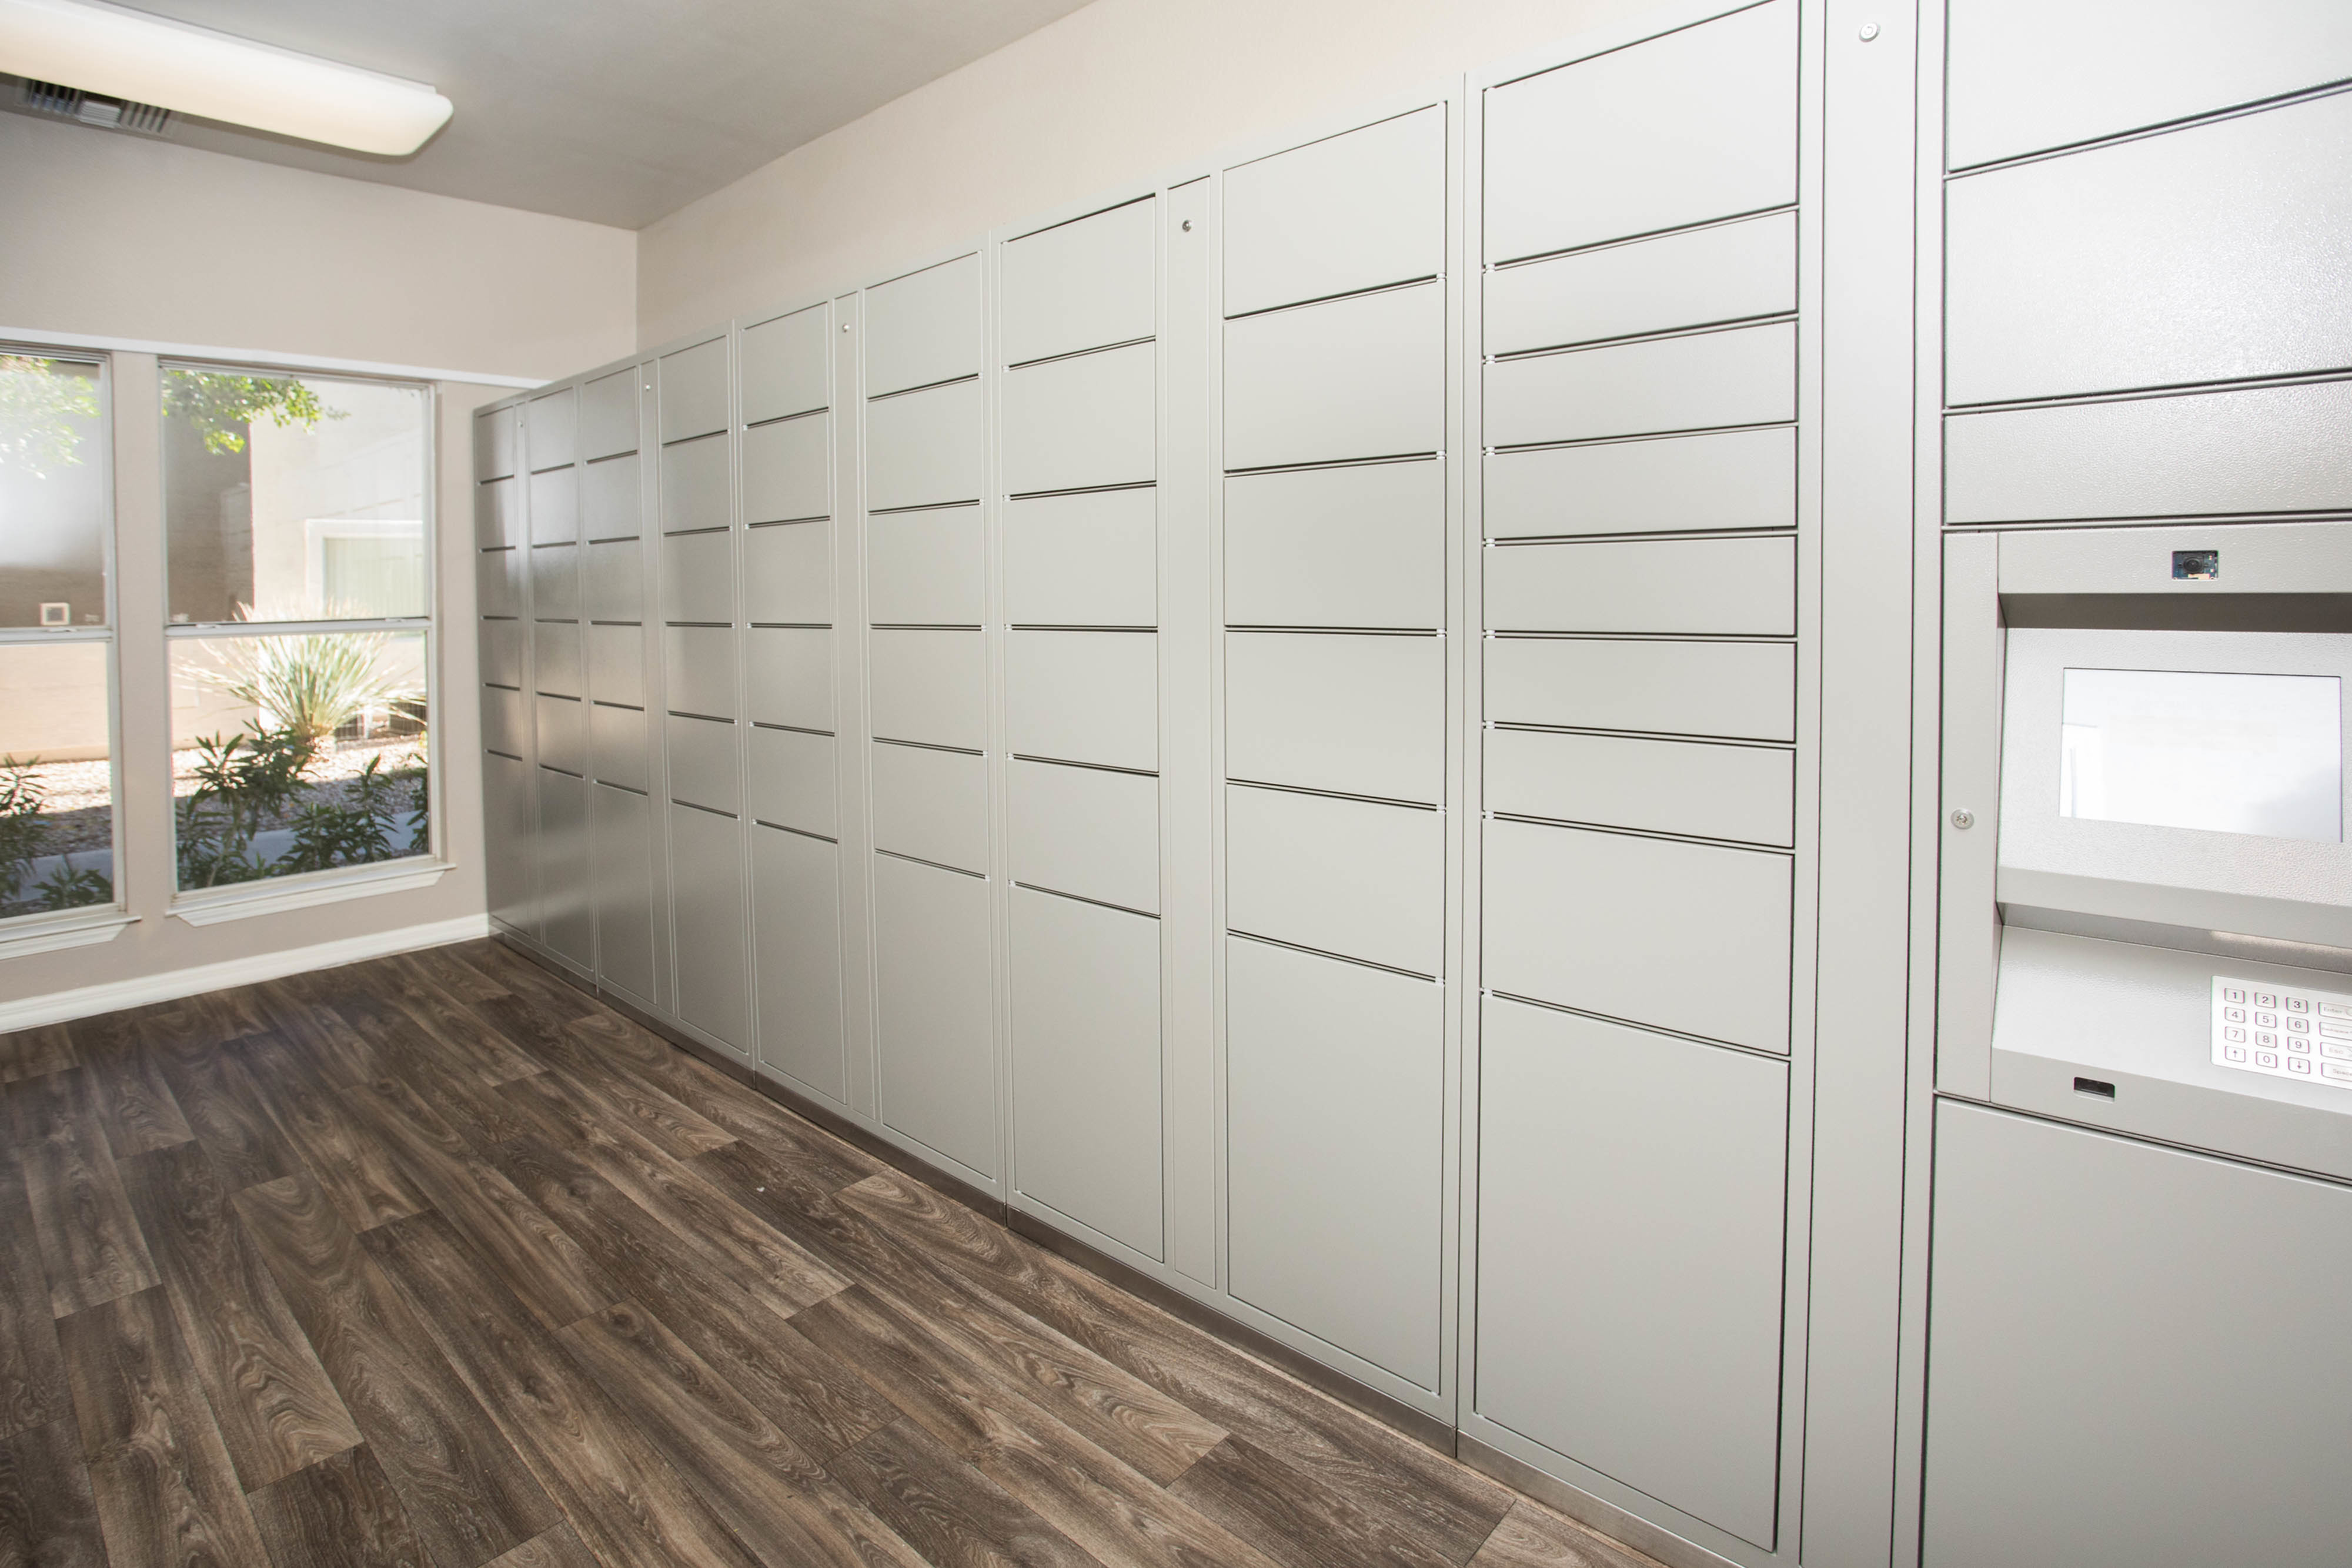 Resident Locker System| Phoenix AZ Apartments For Rent | Arboretum at South Mountain